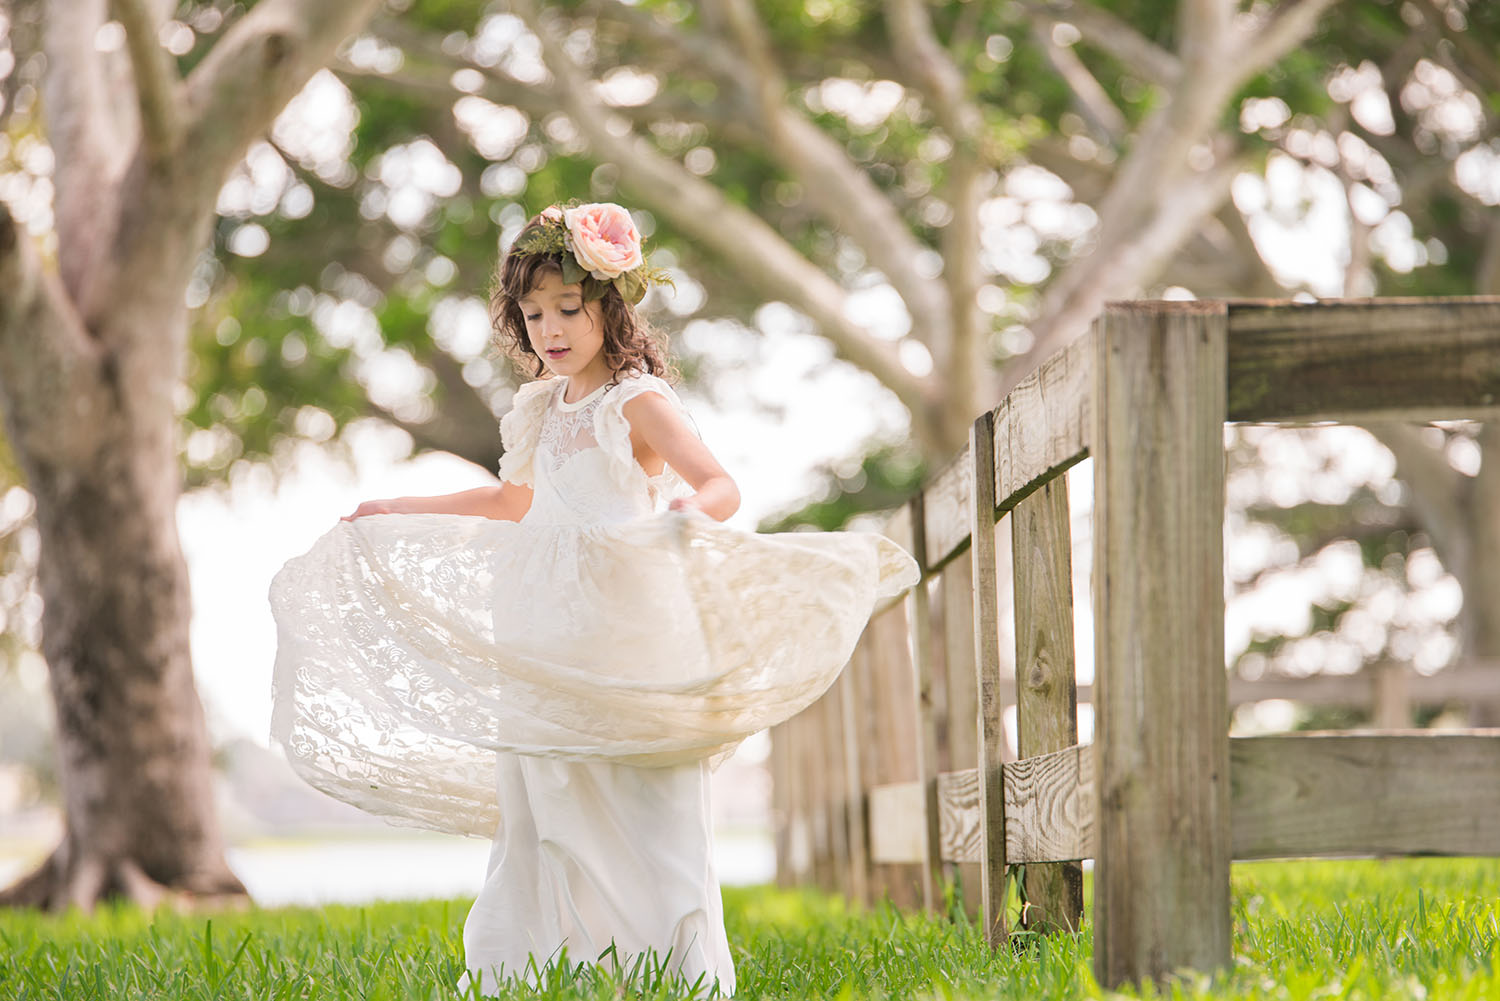 wellington-south-florida-kids-children-photographer-family-child-photography-babies-couture-magical-fairies-girl-portrait-pretty-field-dress-lace-twirling.jpg